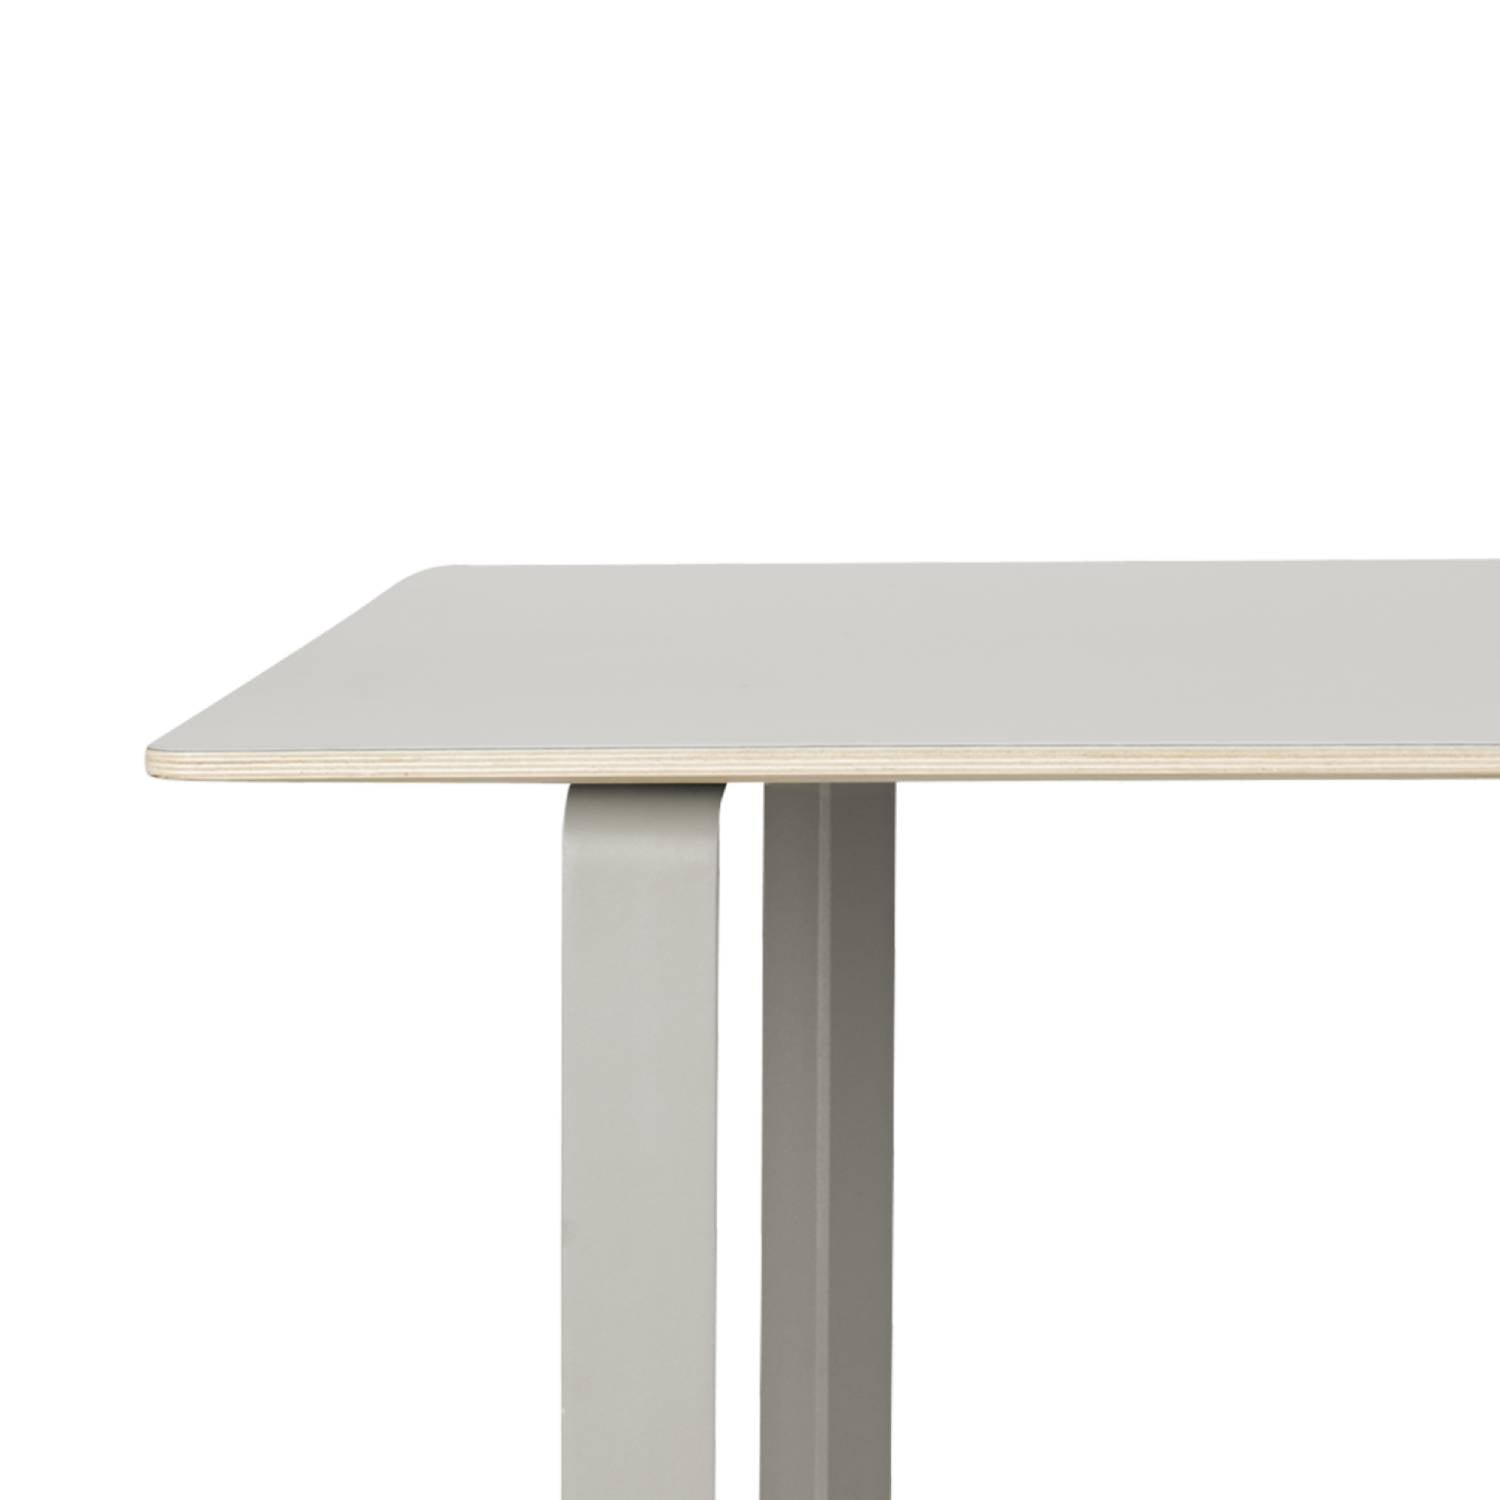 70/70 Table: Small